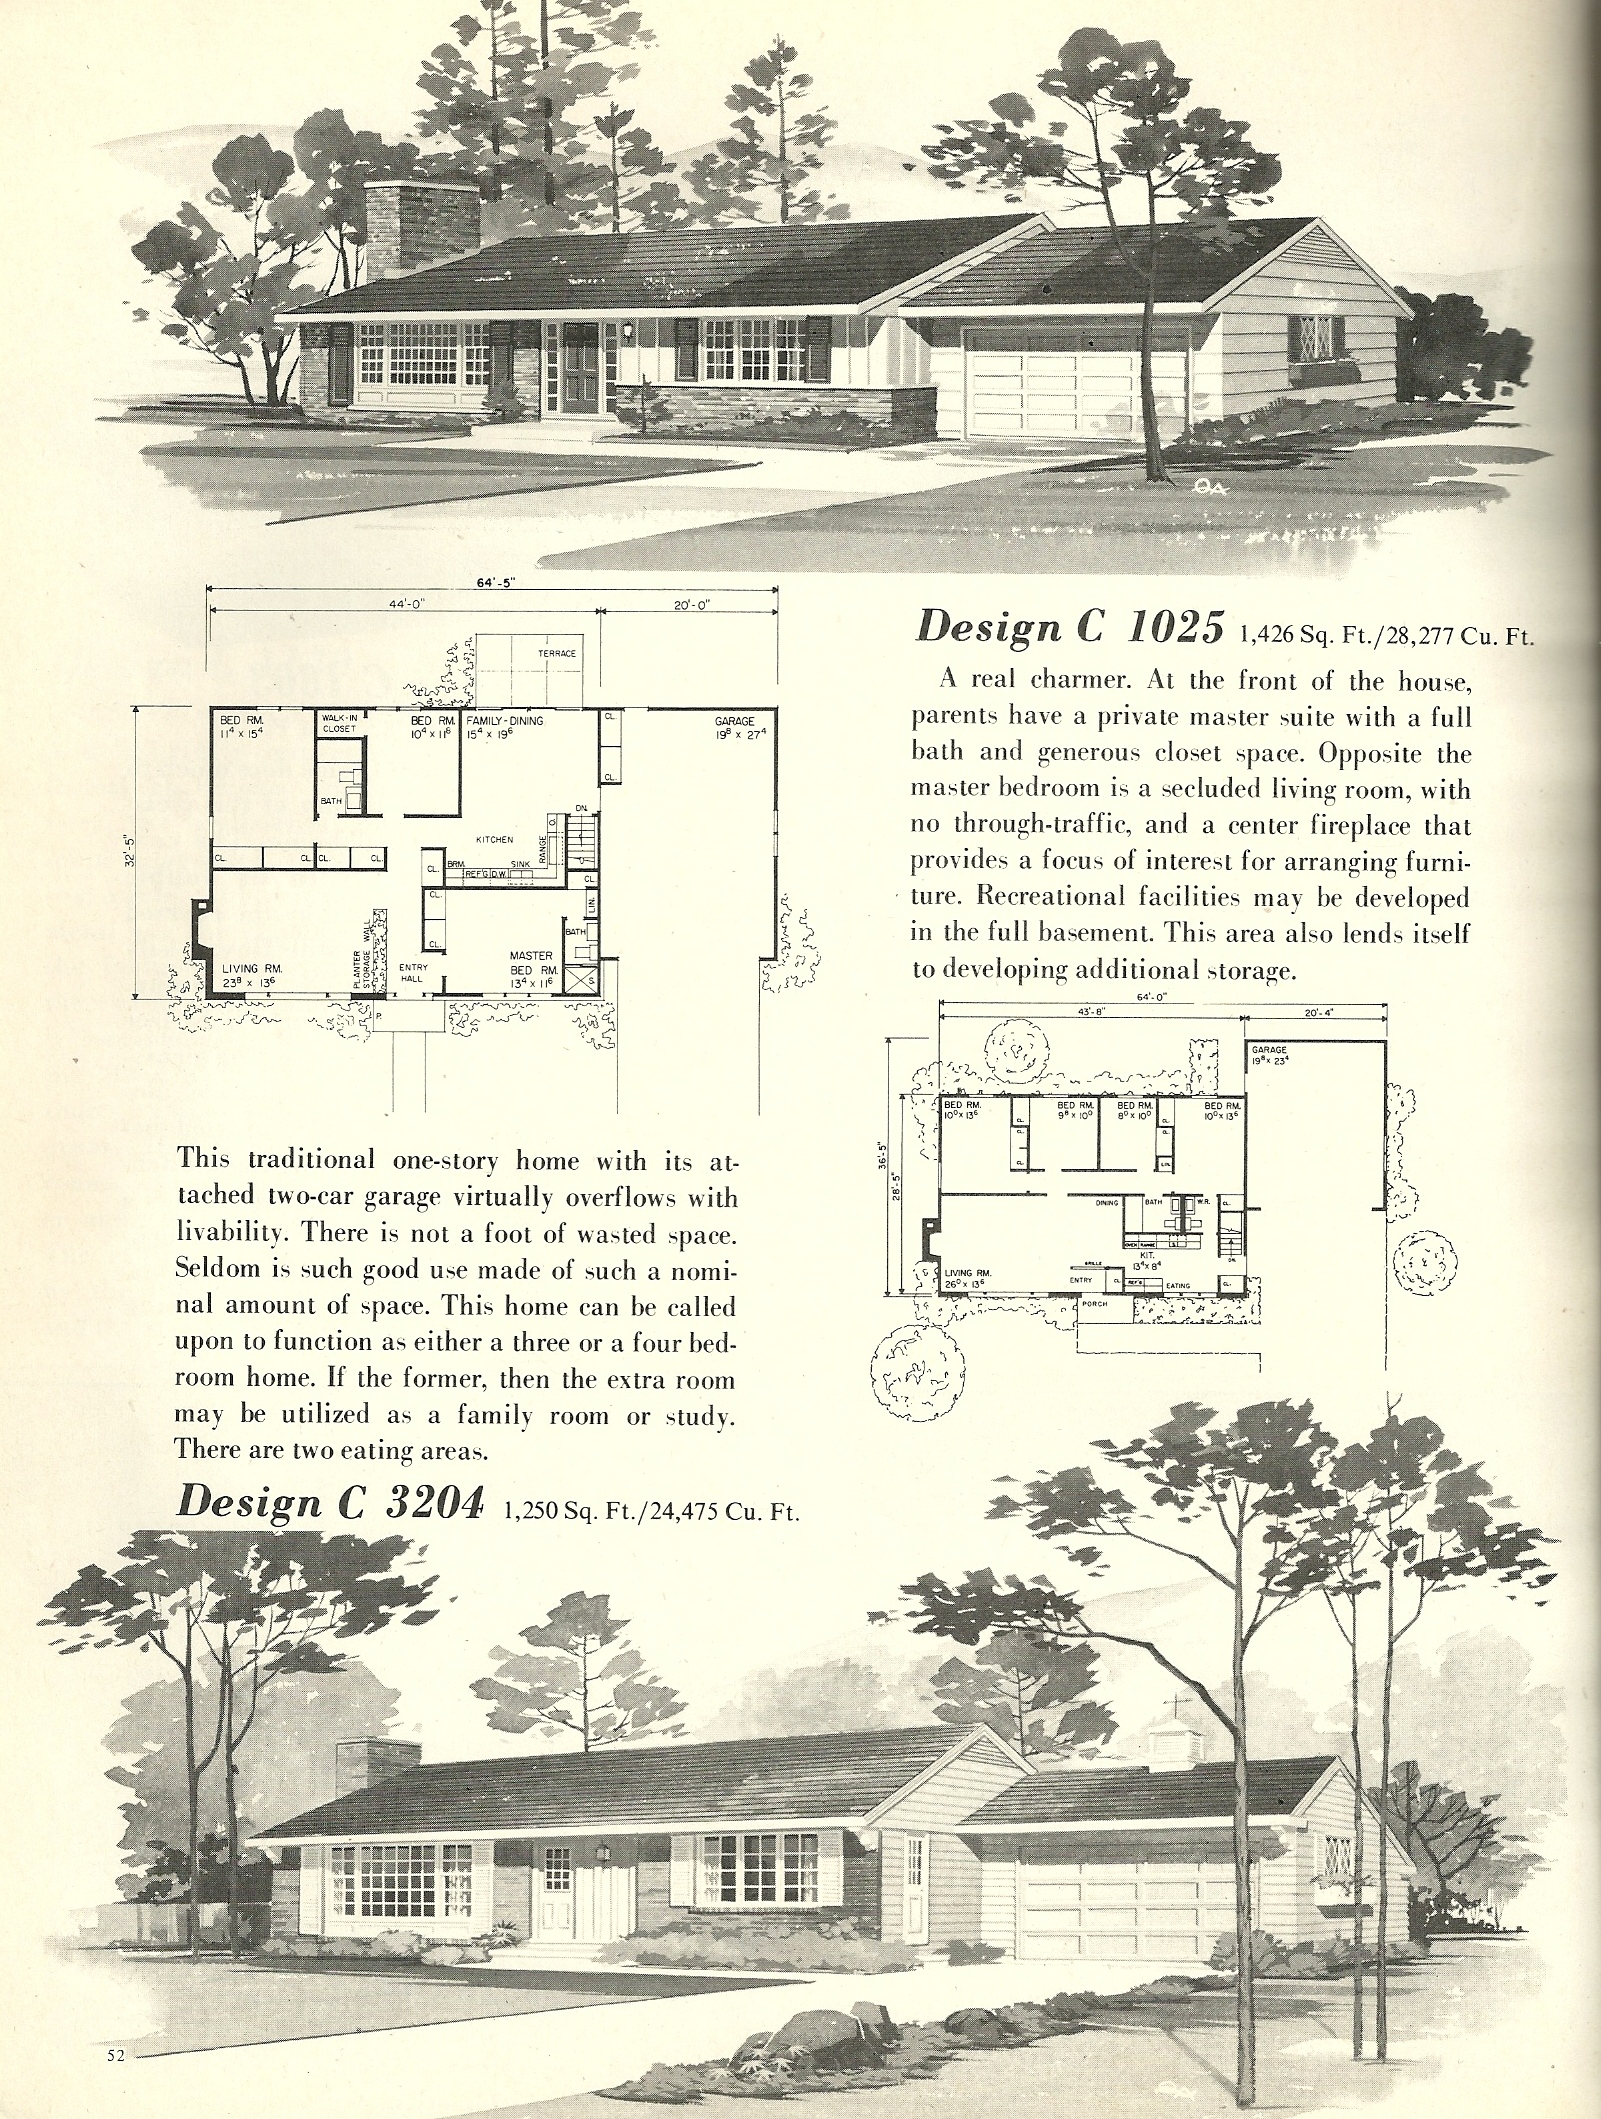 Vintage house plans 1025 antique alter ego for 1960 house plans